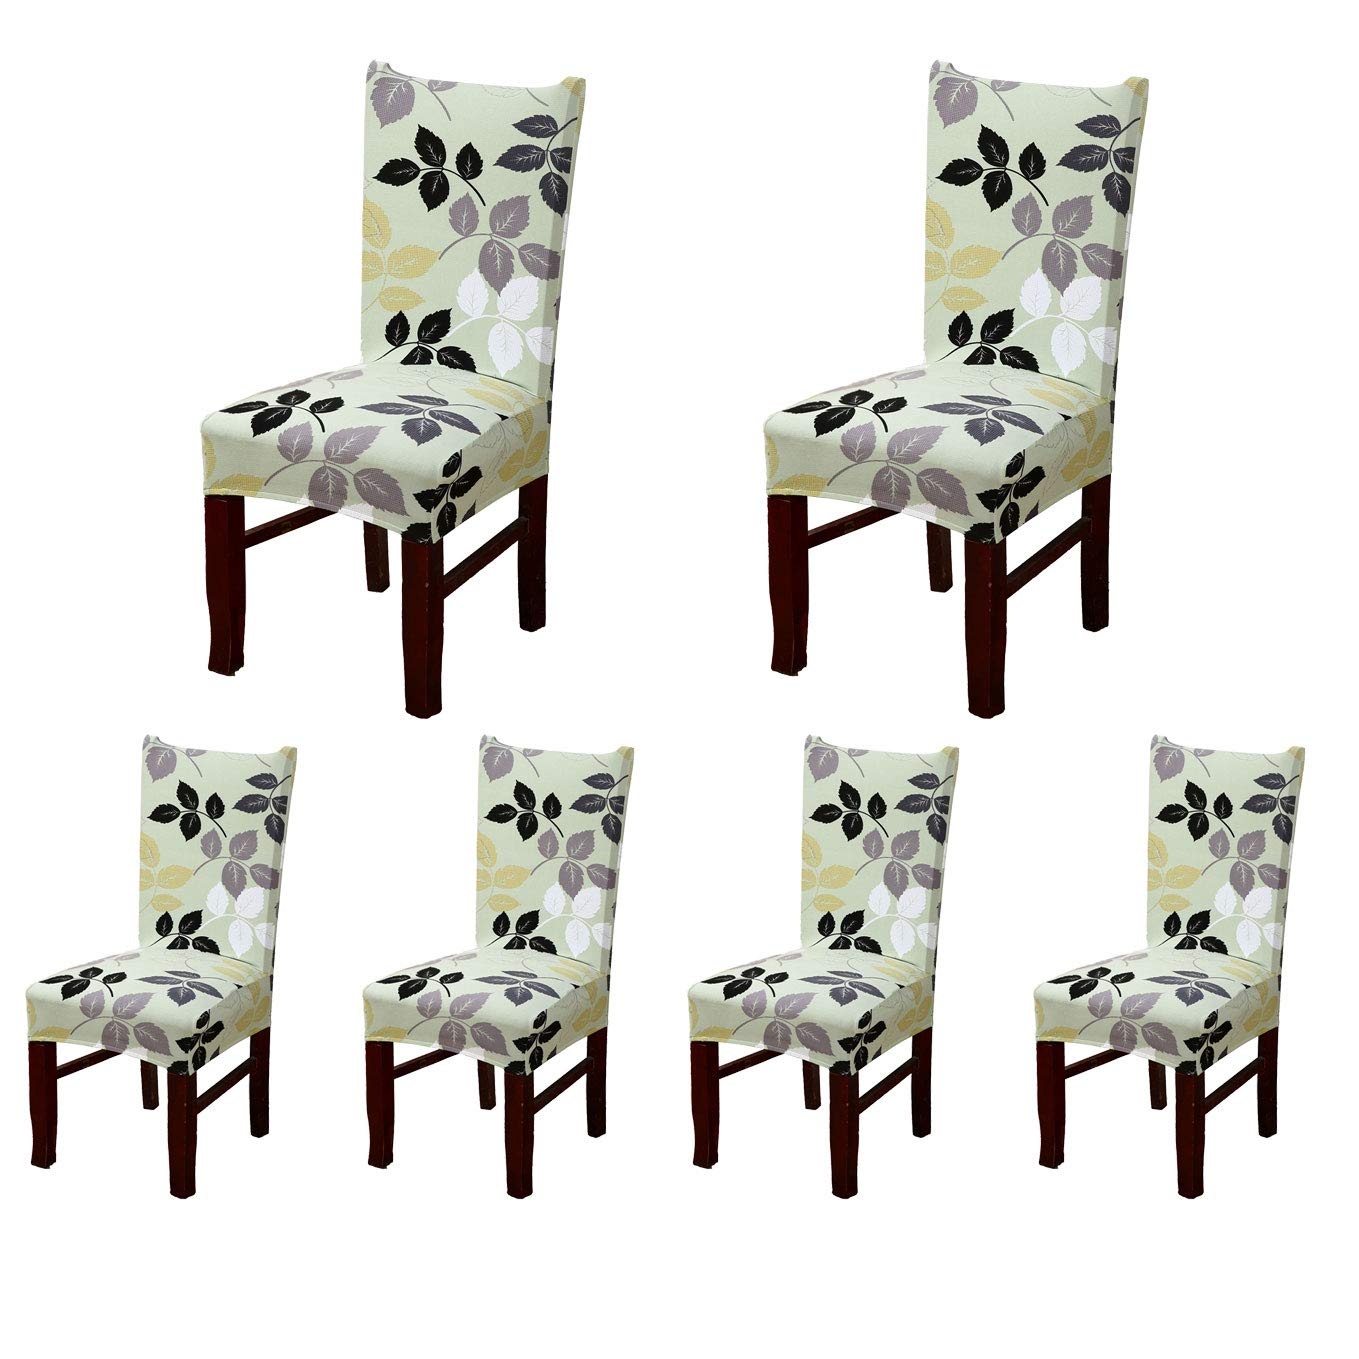 Soulfeel 6 x Soft Spandex Fit Stretch Short Dining Room Chair Covers with Printed Pattern, Banquet Chair Seat Protector Slipcover for Home Party Hotel Wedding Ceremony (Style 1) product image